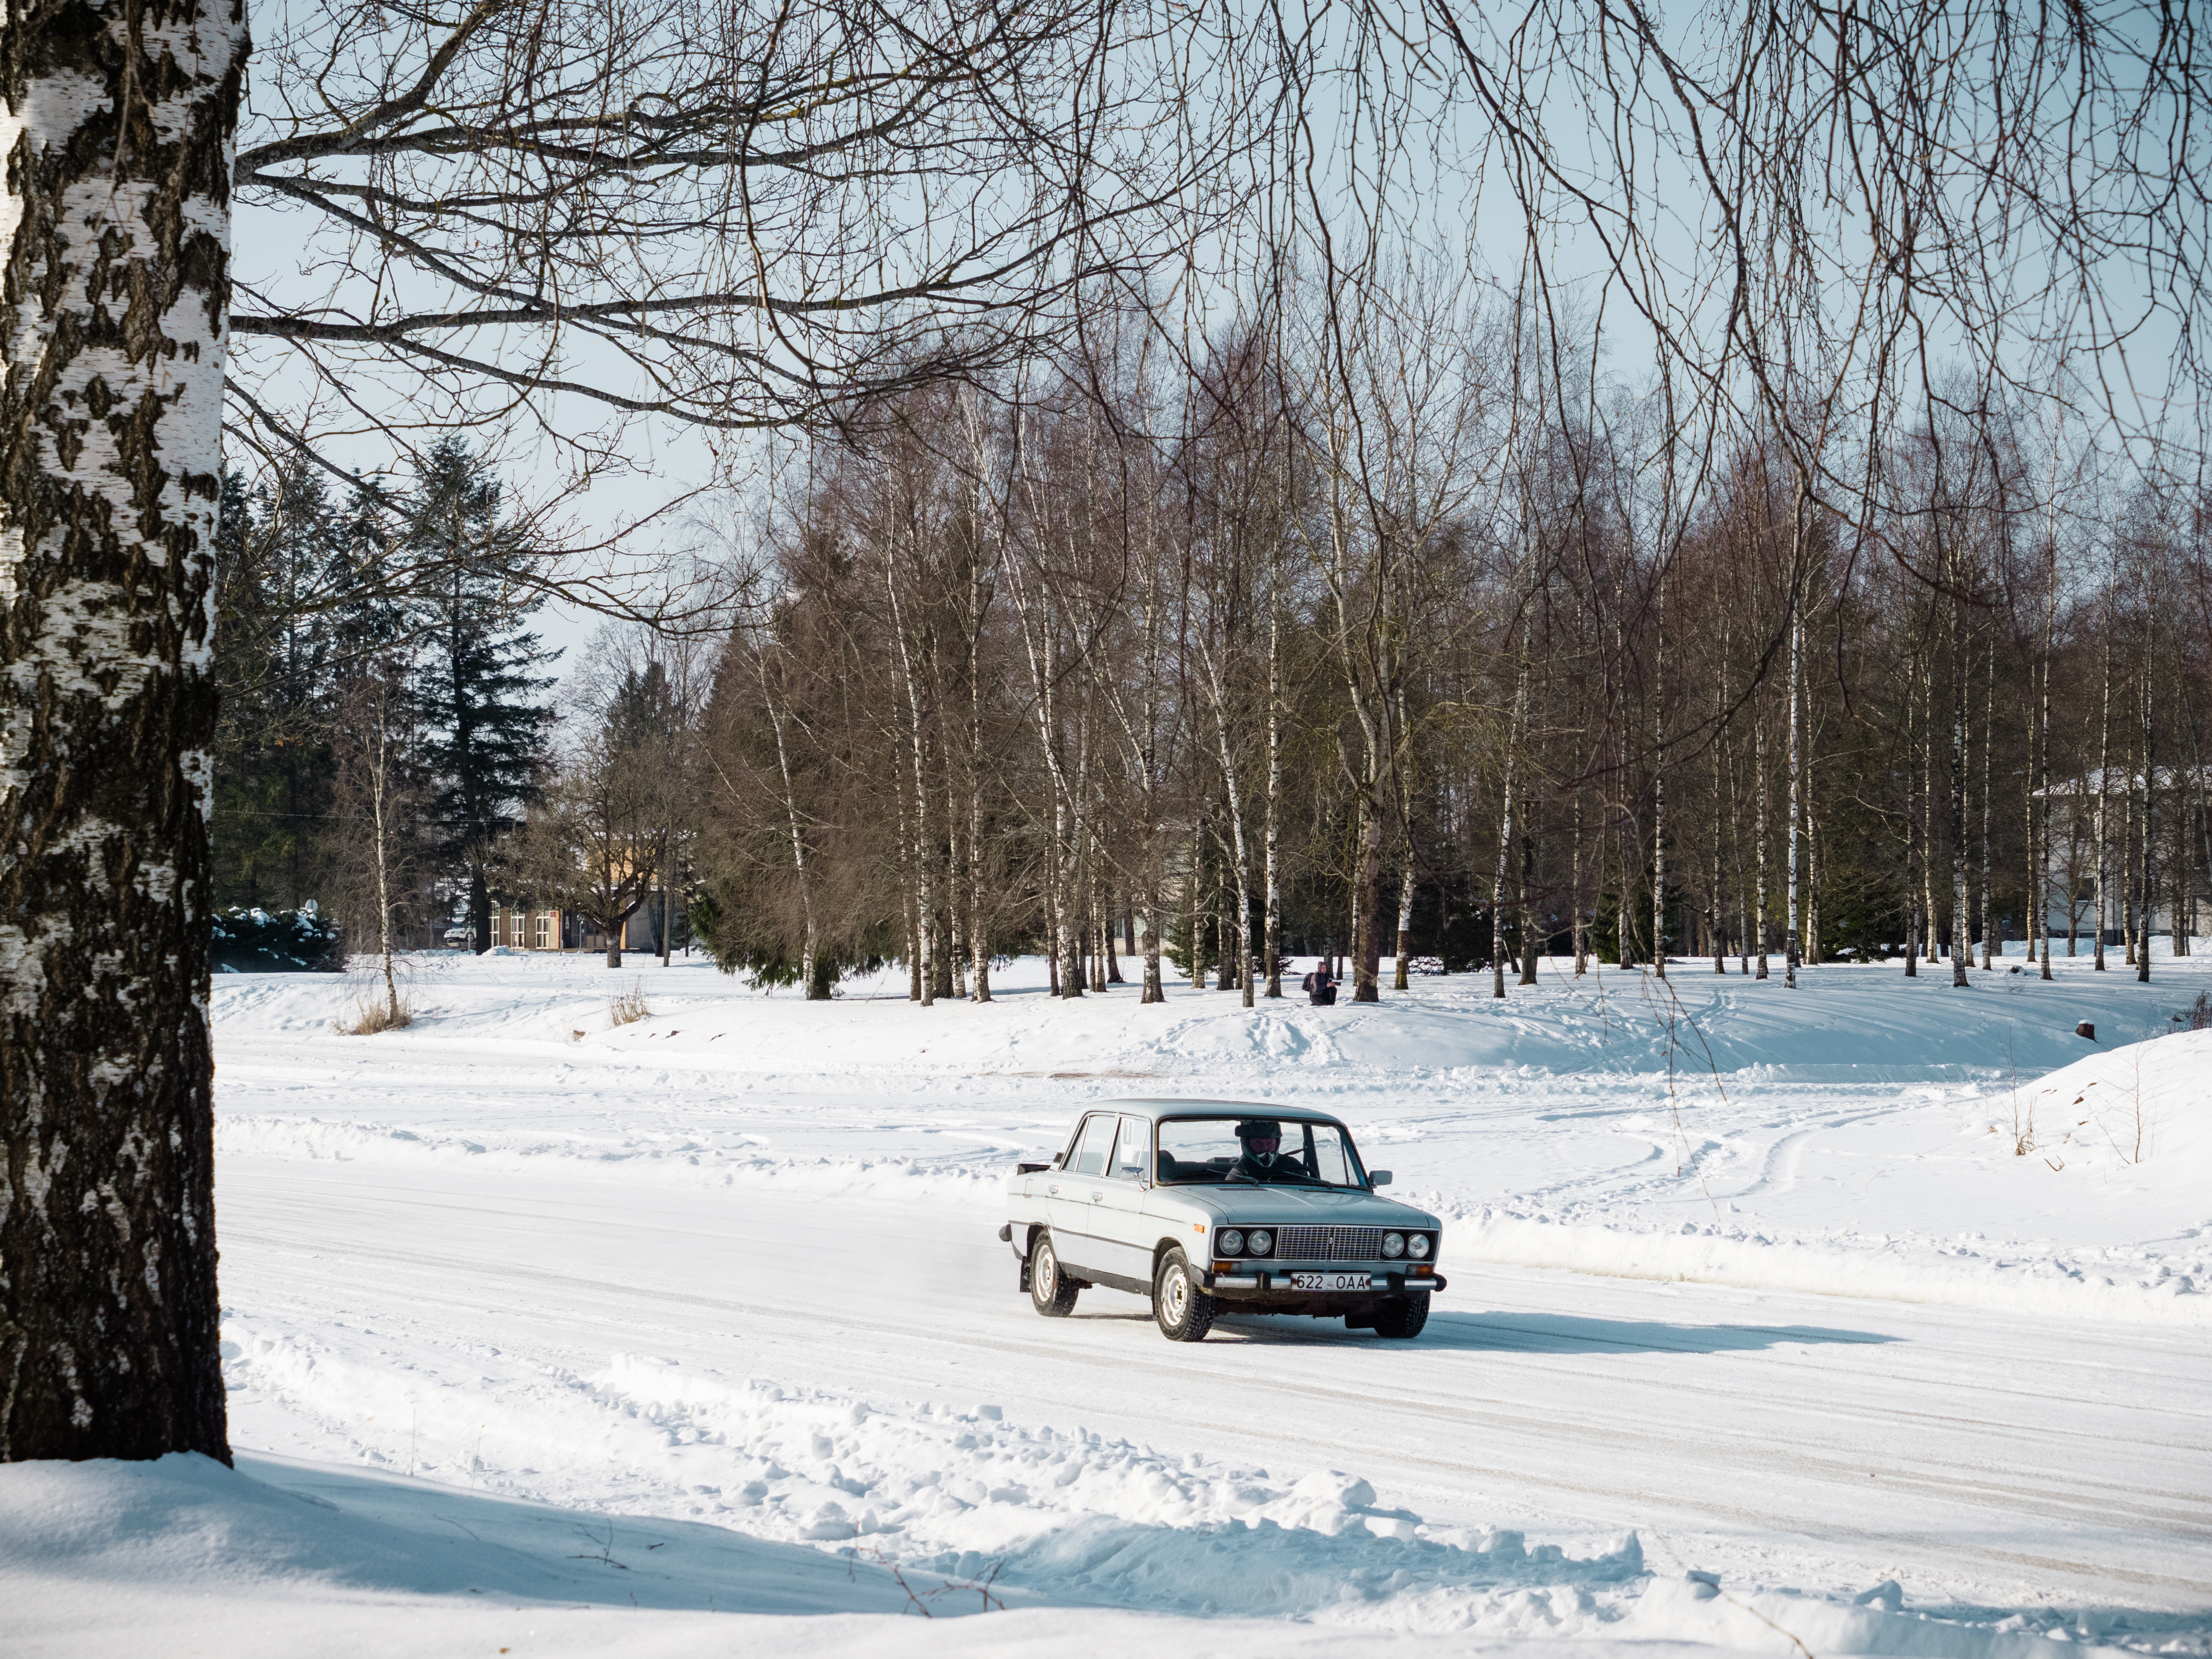 An old Soviet Lada racing on the ice.